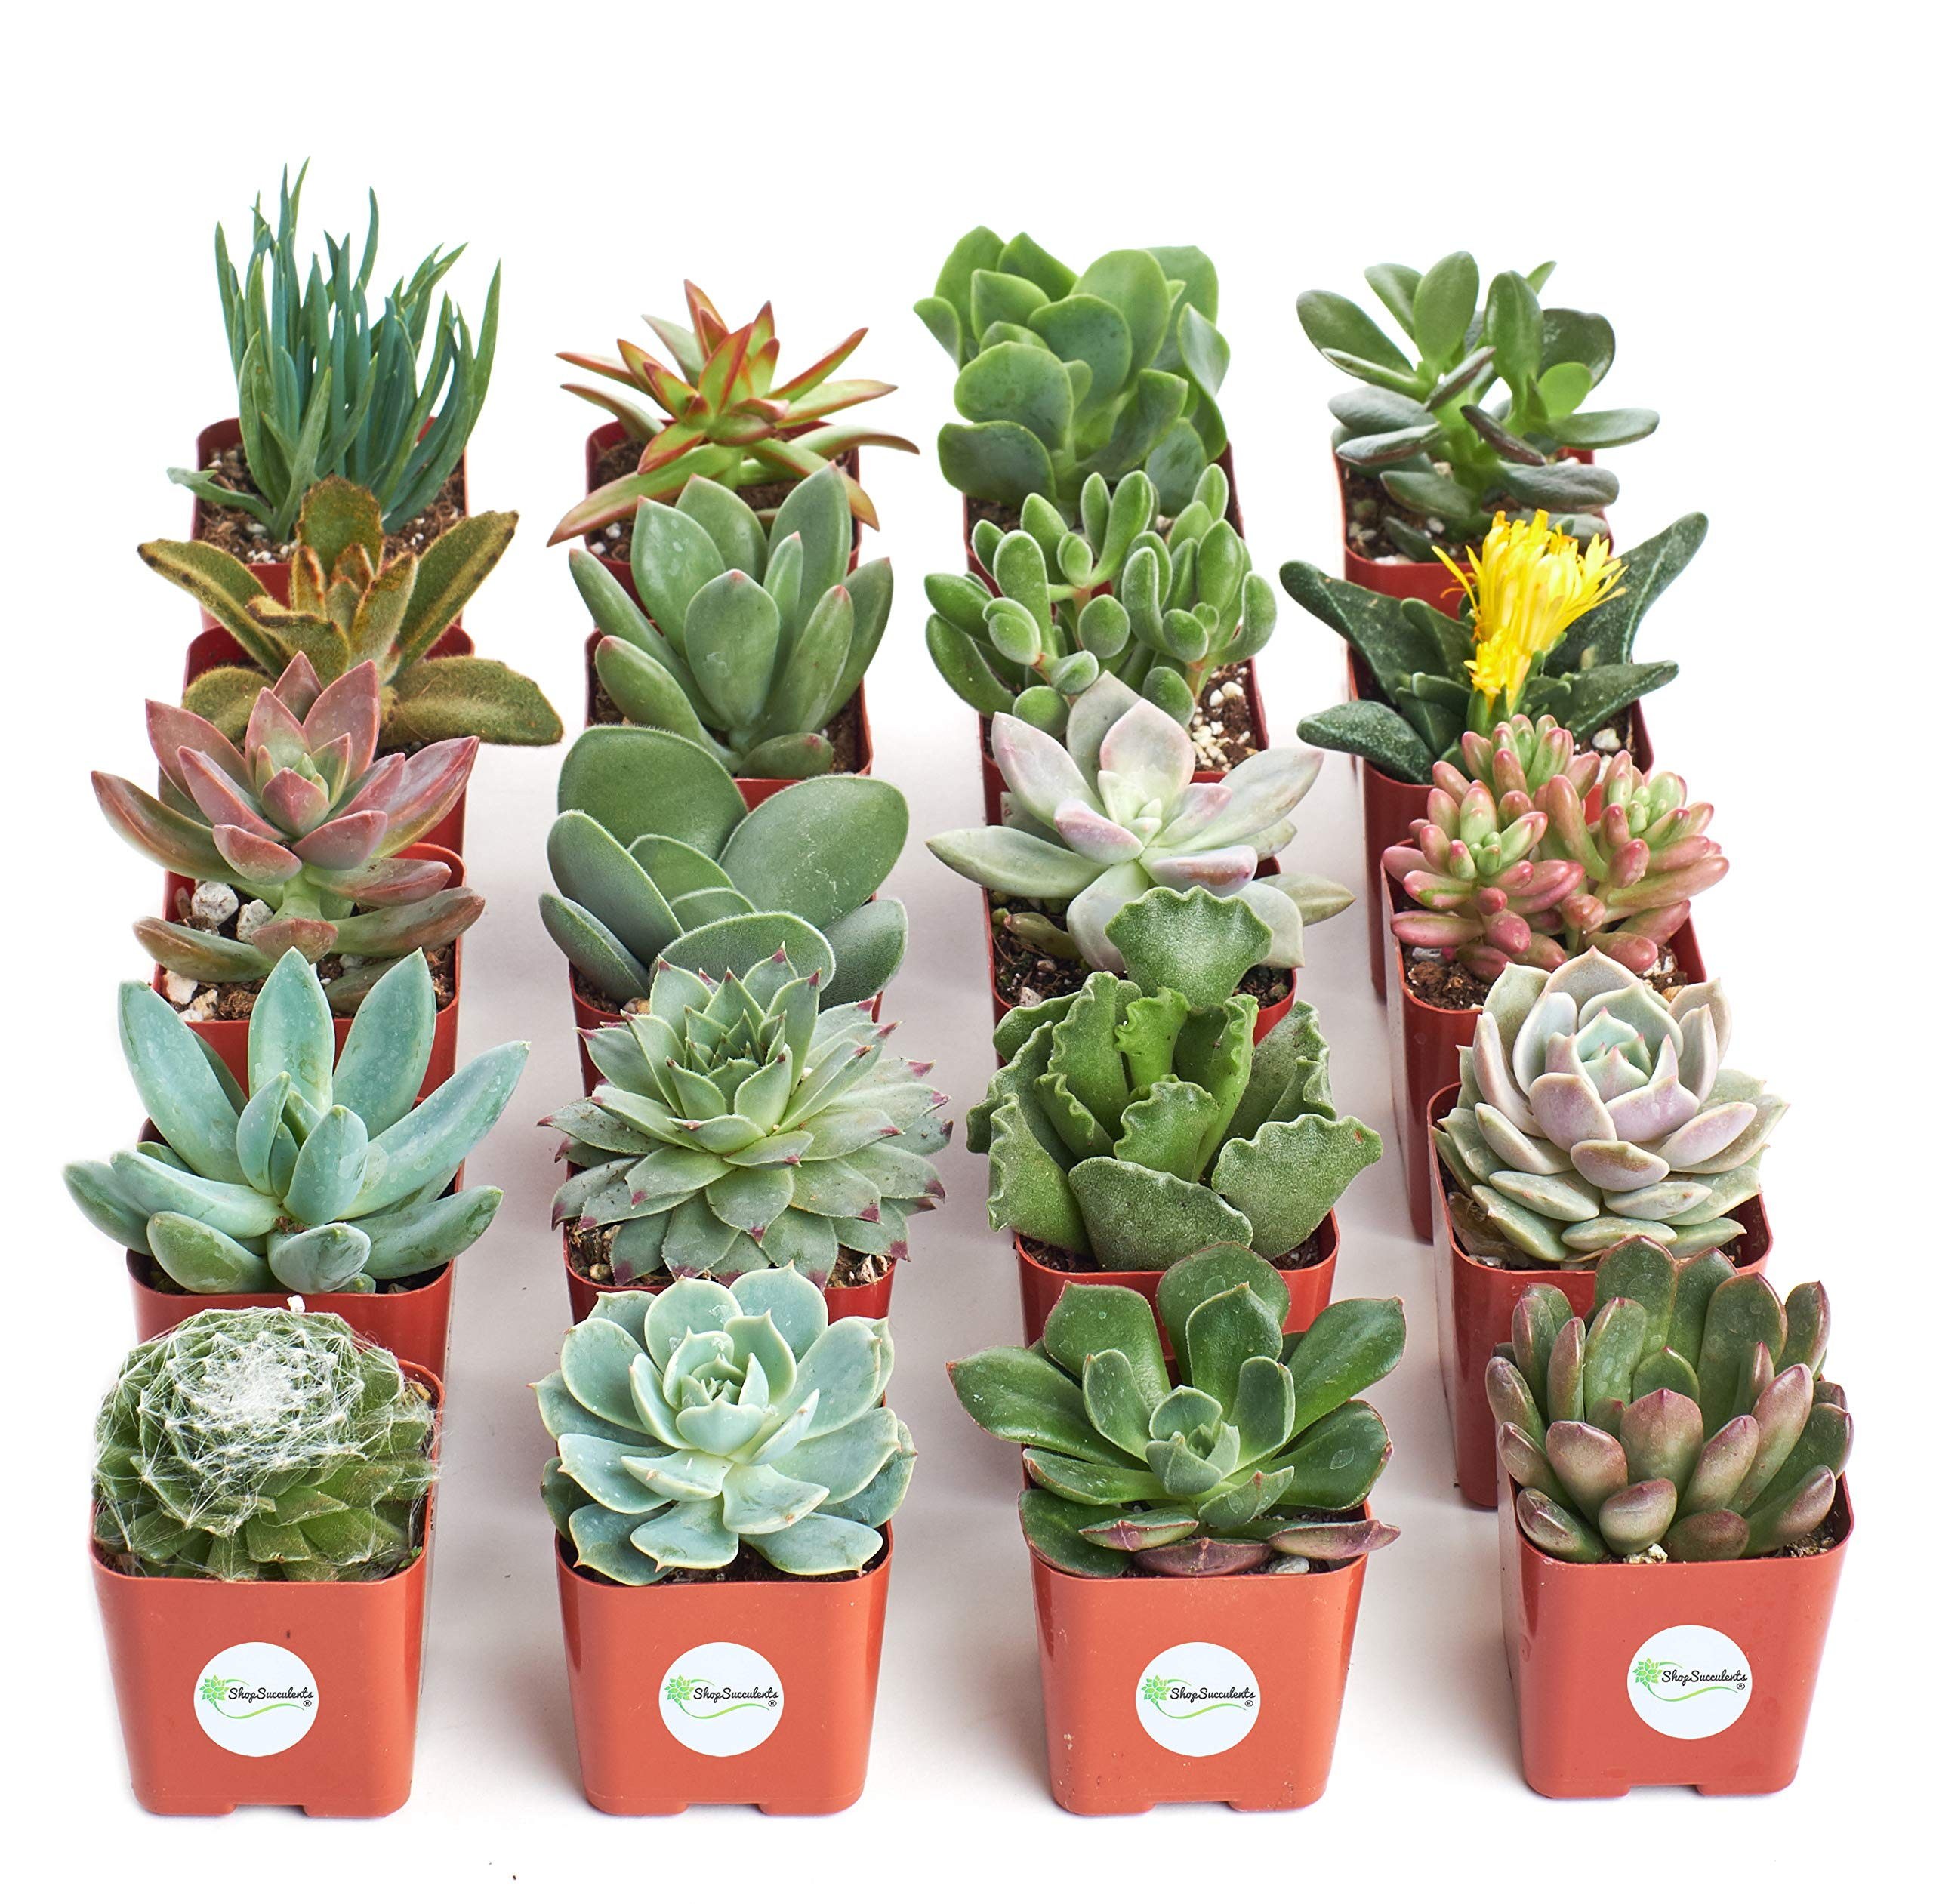 Shop Succulents | Unique Collection of Live Plants, Hand Selected Variety Pack of Mini Succulents, Pack of 20 by Shop Succulents